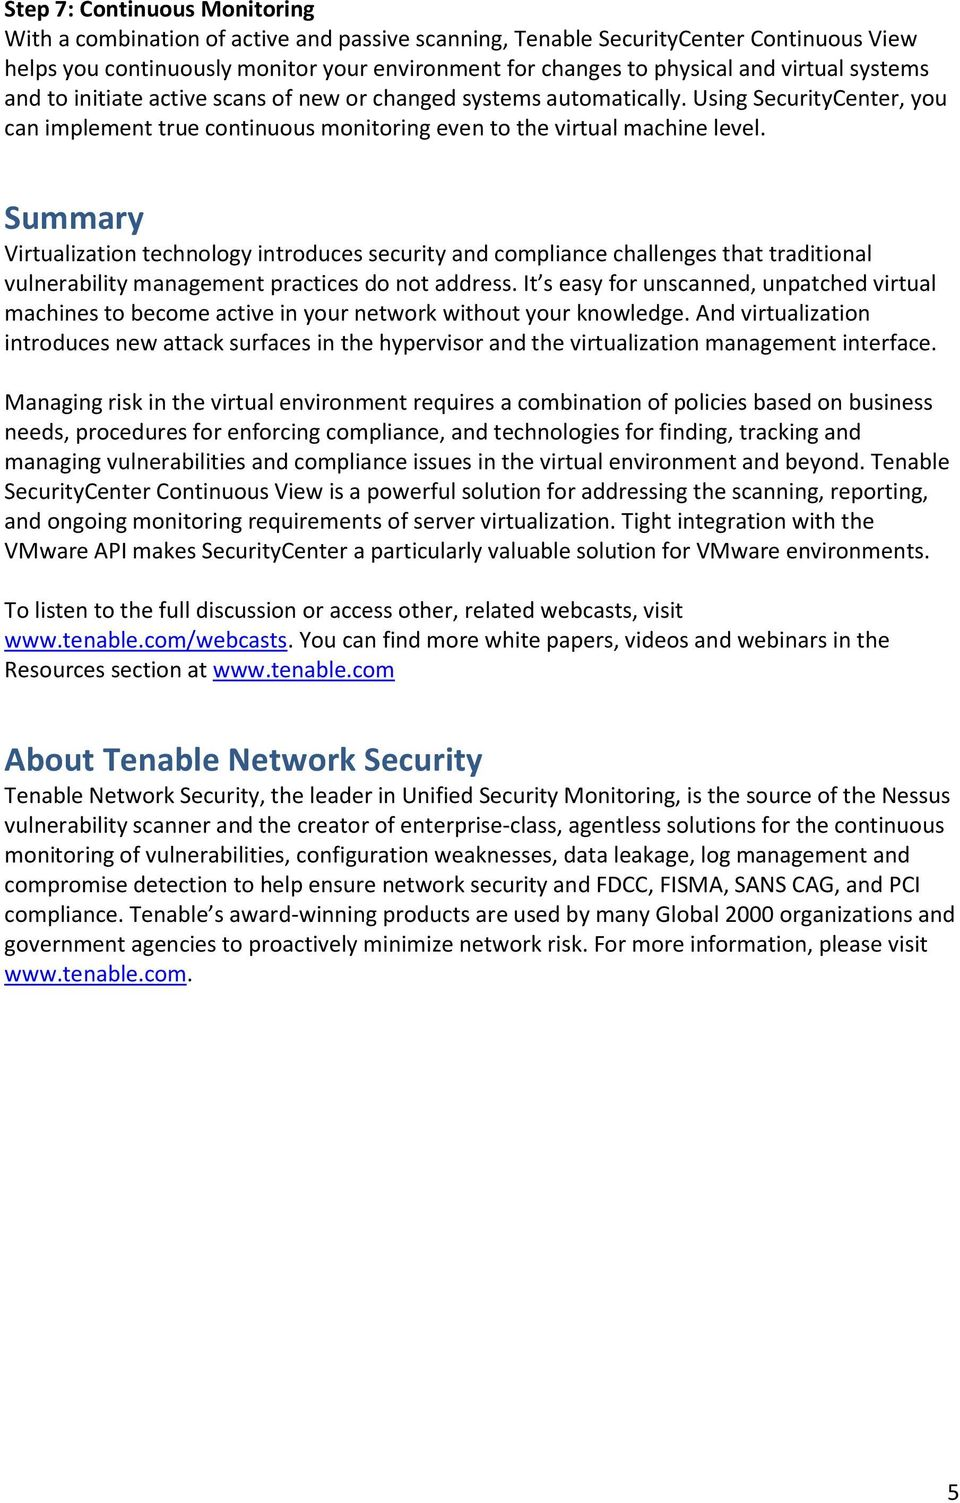 Summary Virtualization technology introduces security and compliance challenges that traditional vulnerability management practices do not address.